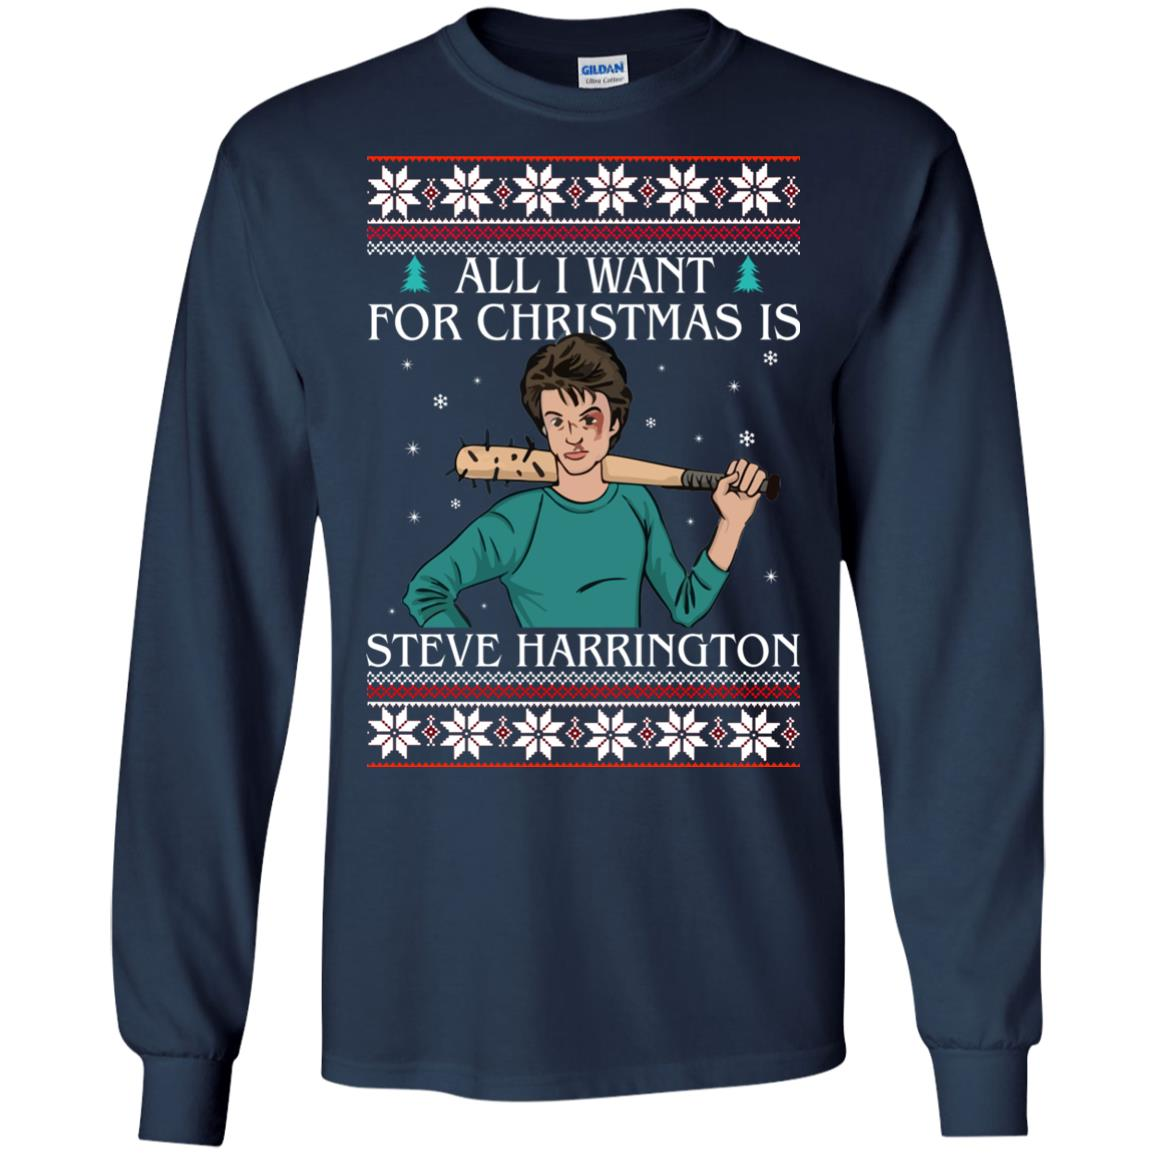 image 4030 - All I want for Christmas is Steve Harrington Ugly Sweater